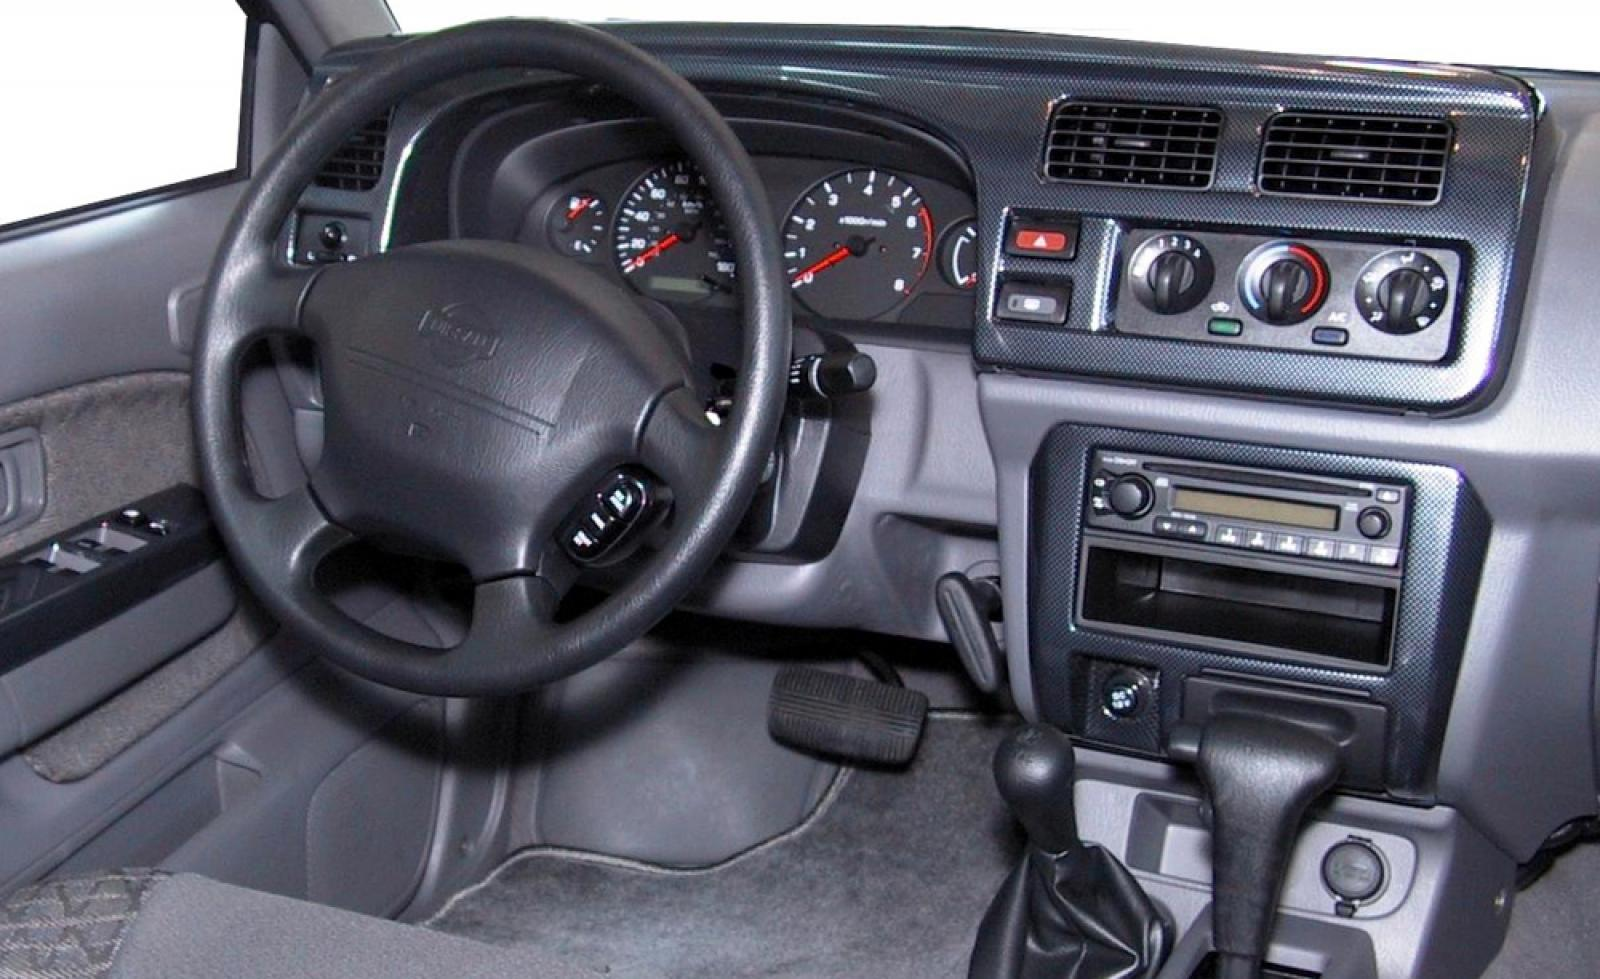 2000 Nissan Xterra Information And Photos Zomb Drive